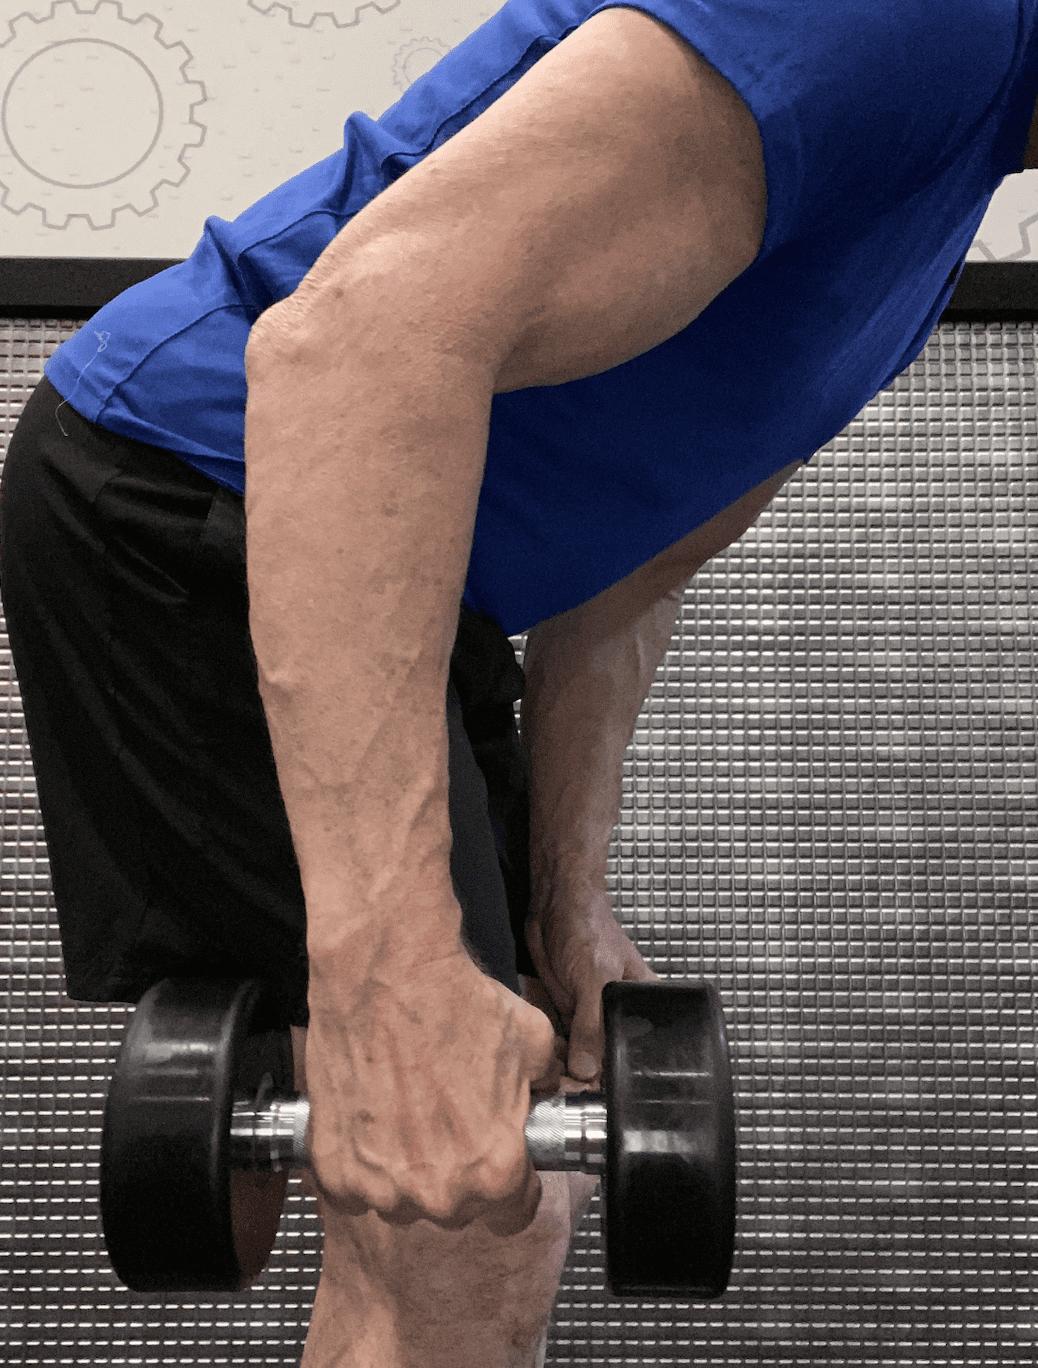 slightly upright forearm down-hanging position